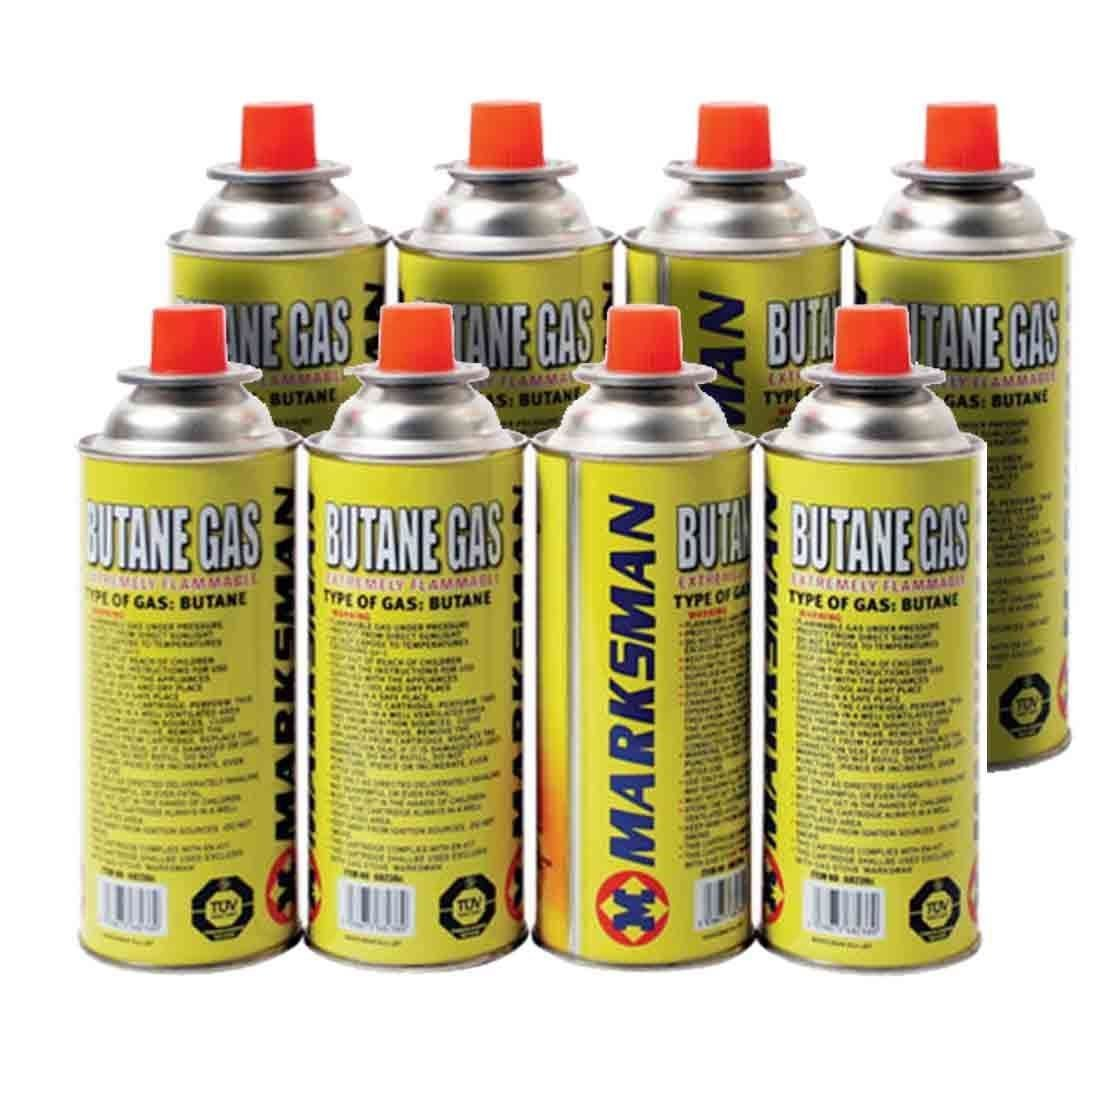 NEW BUTANE GAS BOTTLES CANISTERS FOR COOKER HEATER BBQ CAMPING REFILLS CANS 4PK ASAB LEUKBALG8889